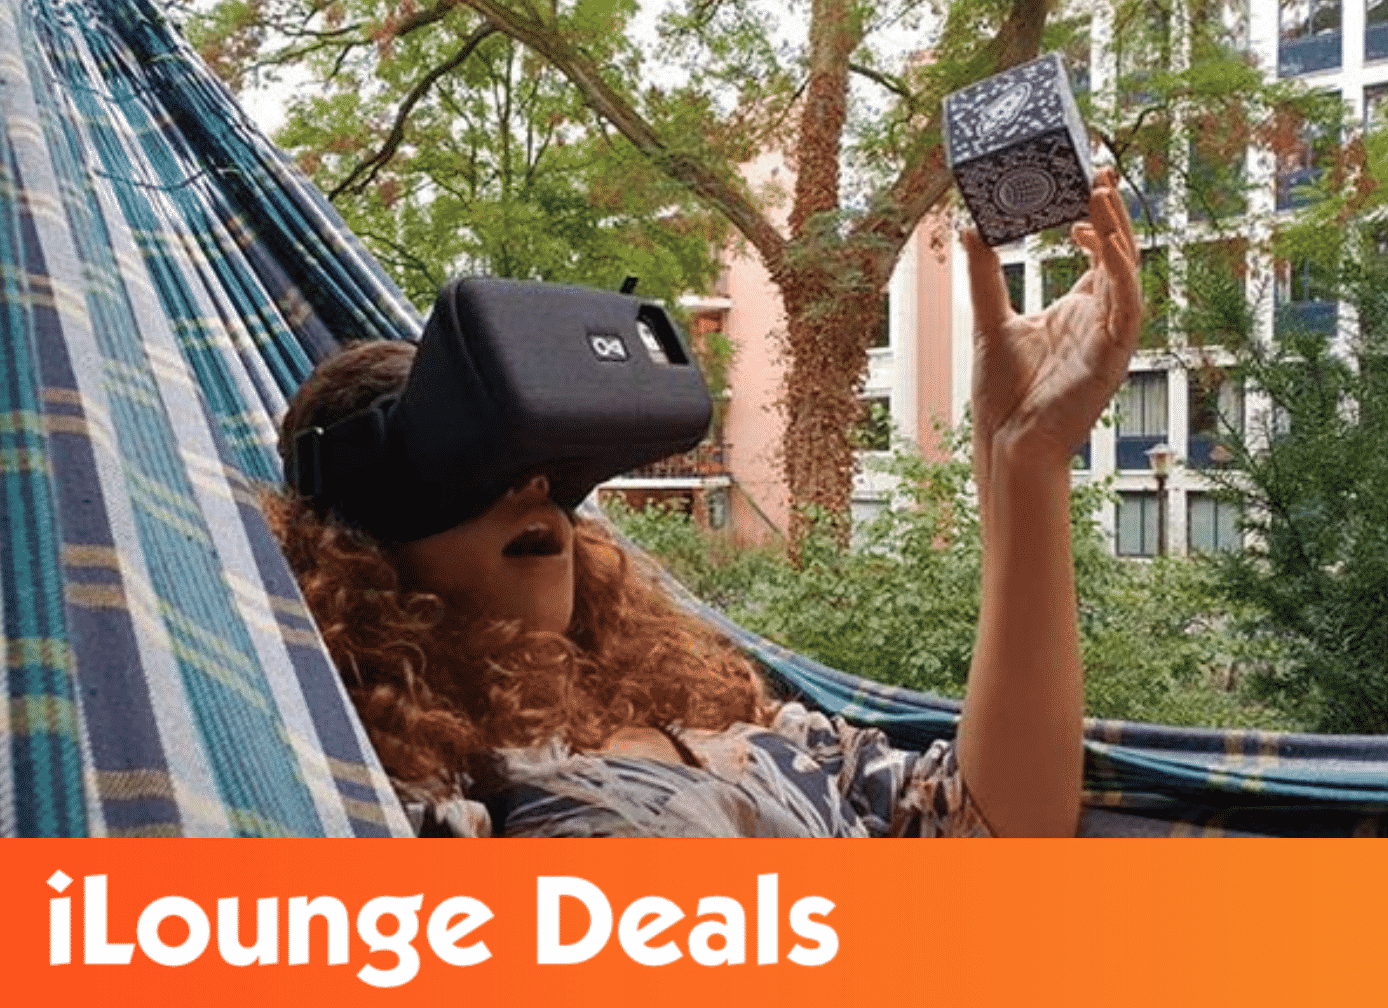 Get 30% off on the MagiMask + MagiTools: AR Headset & Tracker Objects